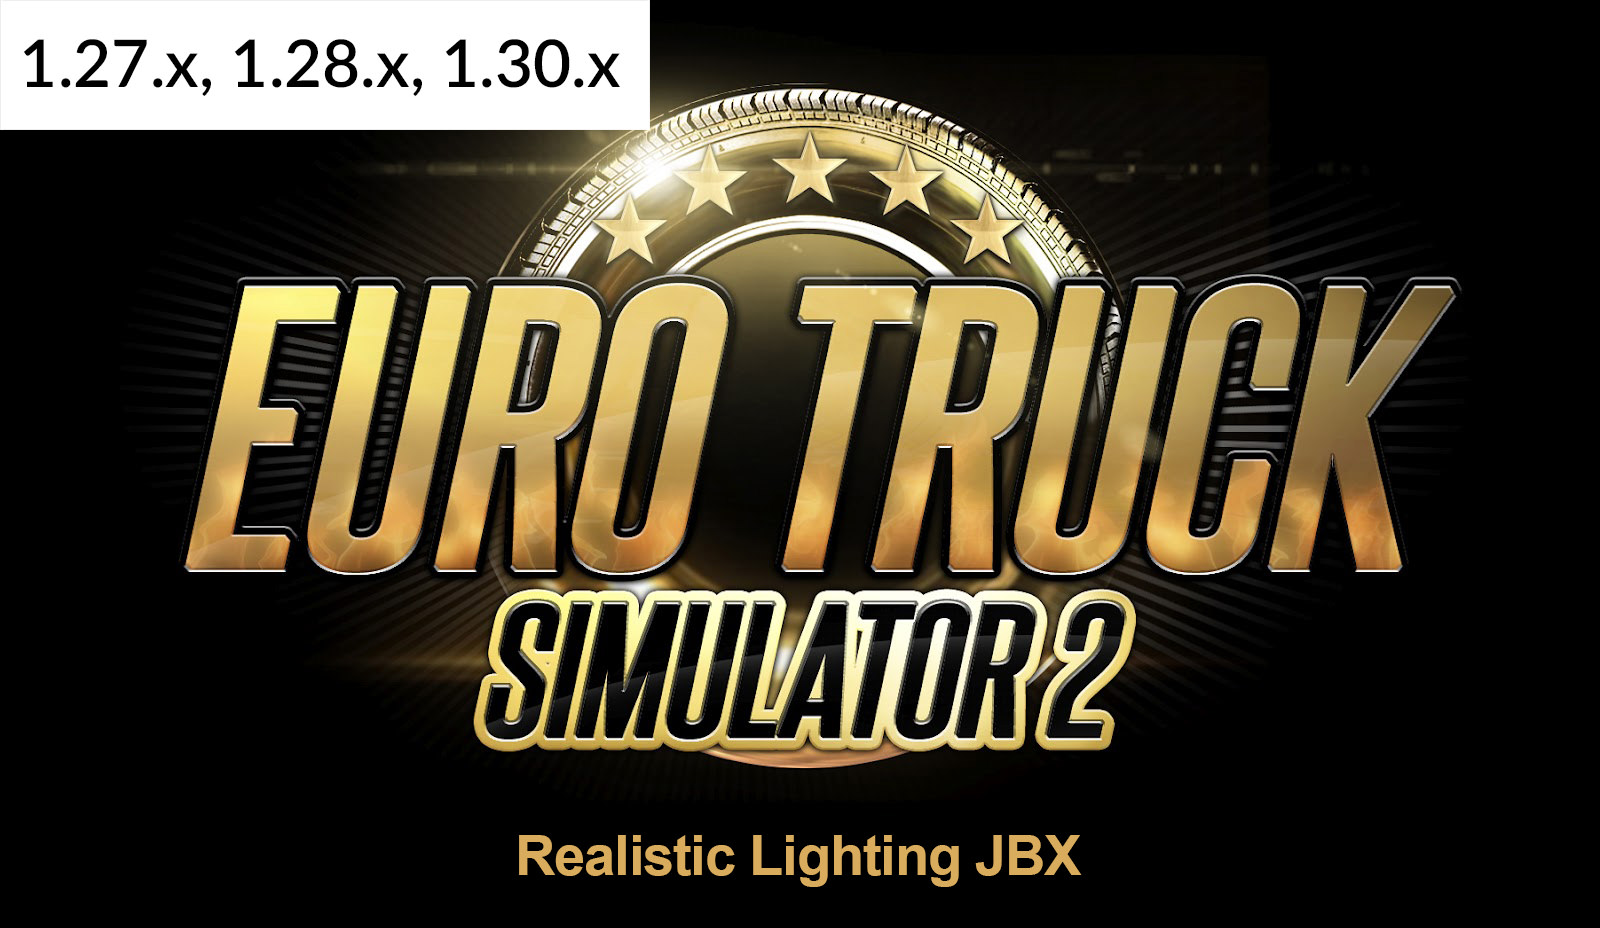 Realistic Lighting v1.5 JBX (1.30.x)